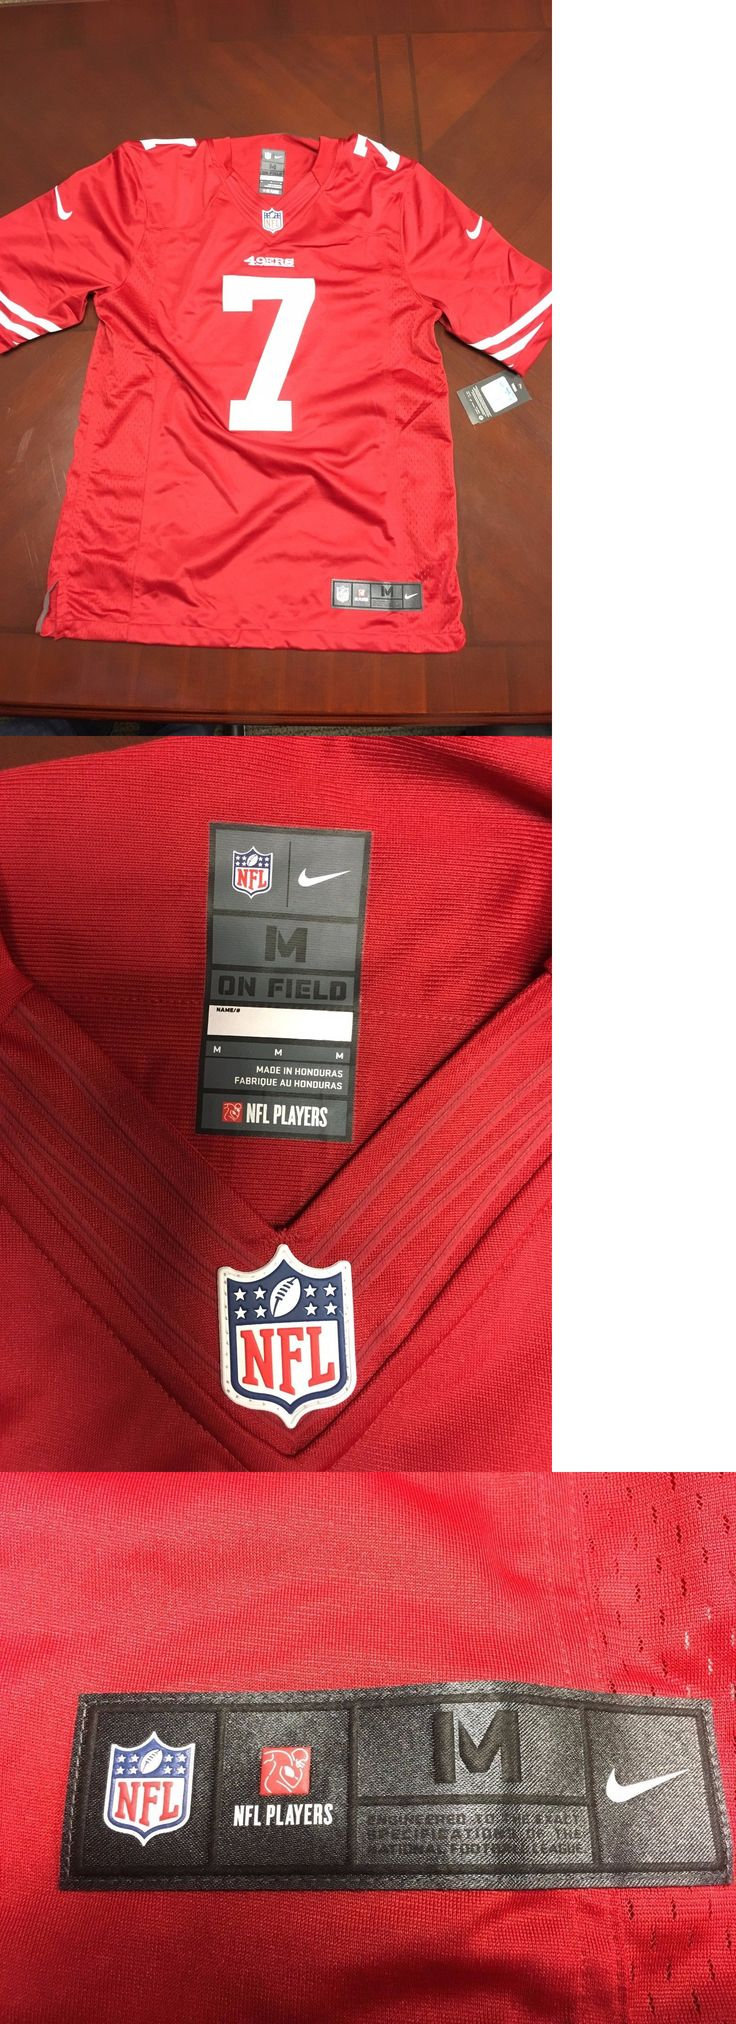 Football-NFL 206: Mens San Francisco 49Ers Colin Kaepernick Auth Nike On Field Game Jersey Size M -> BUY IT NOW ONLY: $33.99 on eBay!